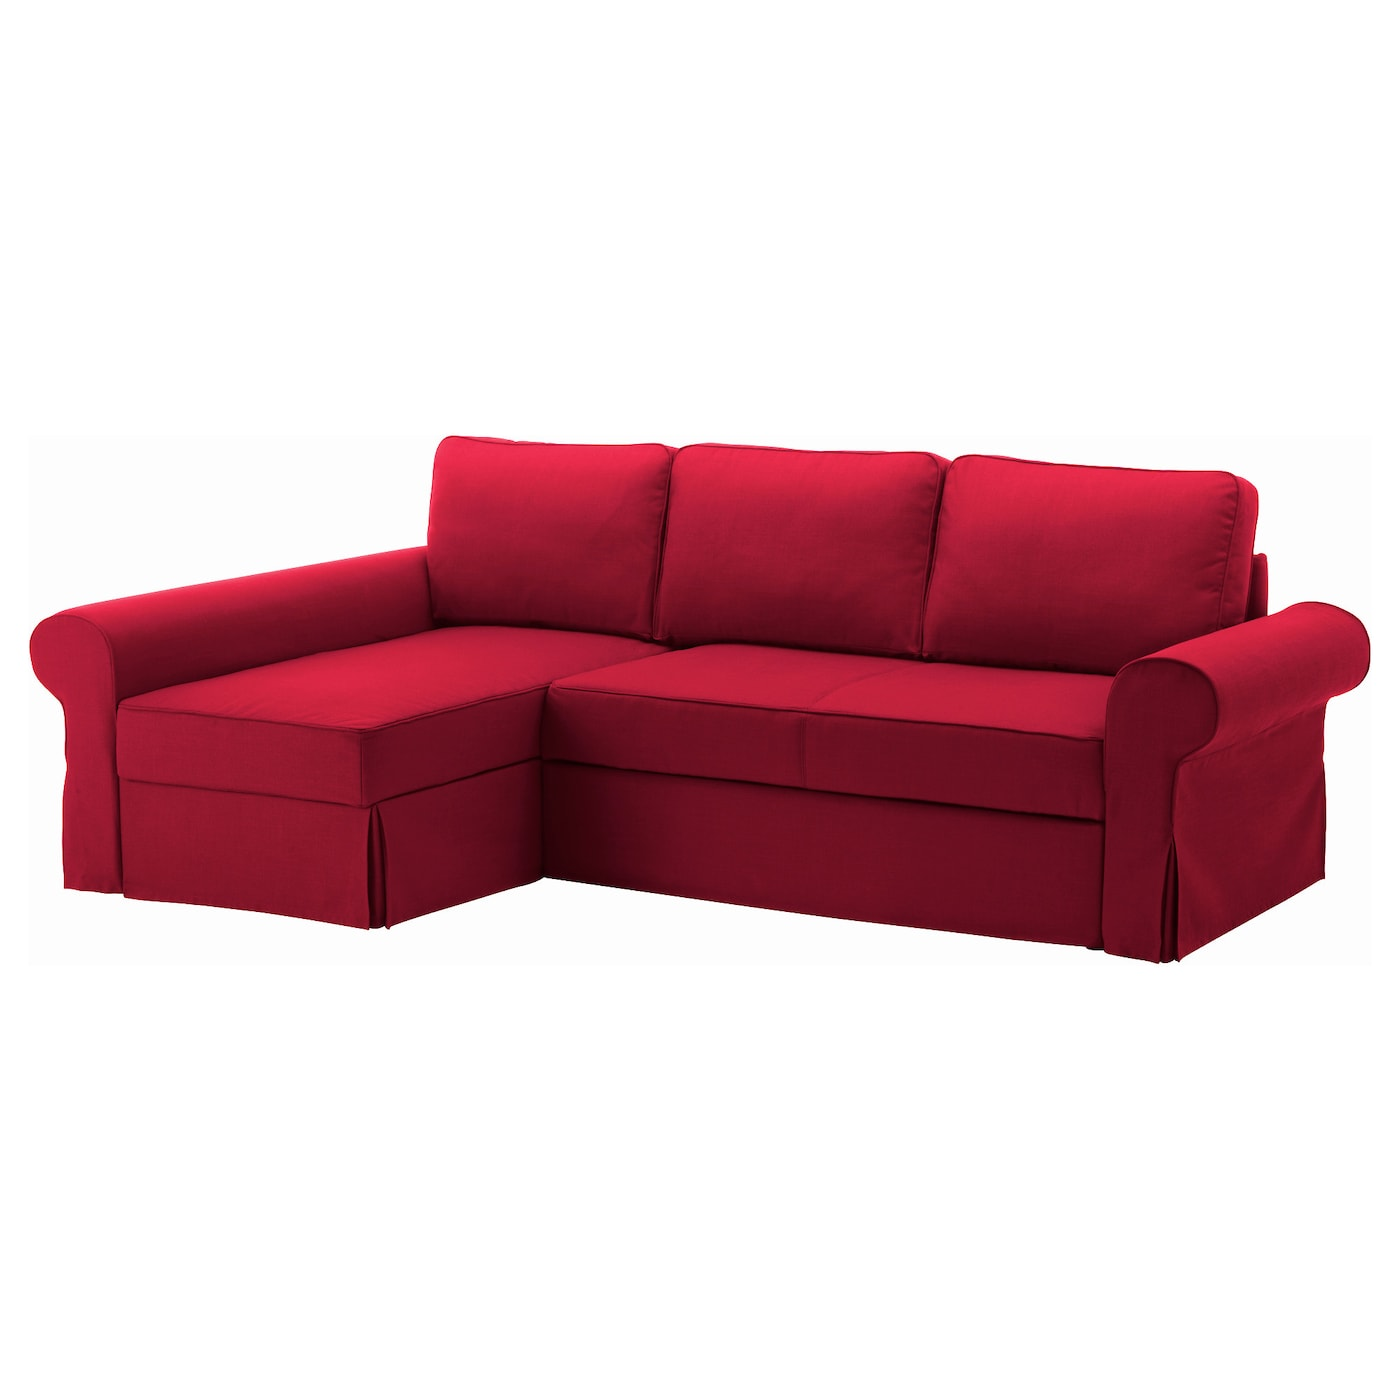 Backabro sofa bed with chaise longue nordvalla red ikea for Sofas con chaise longue